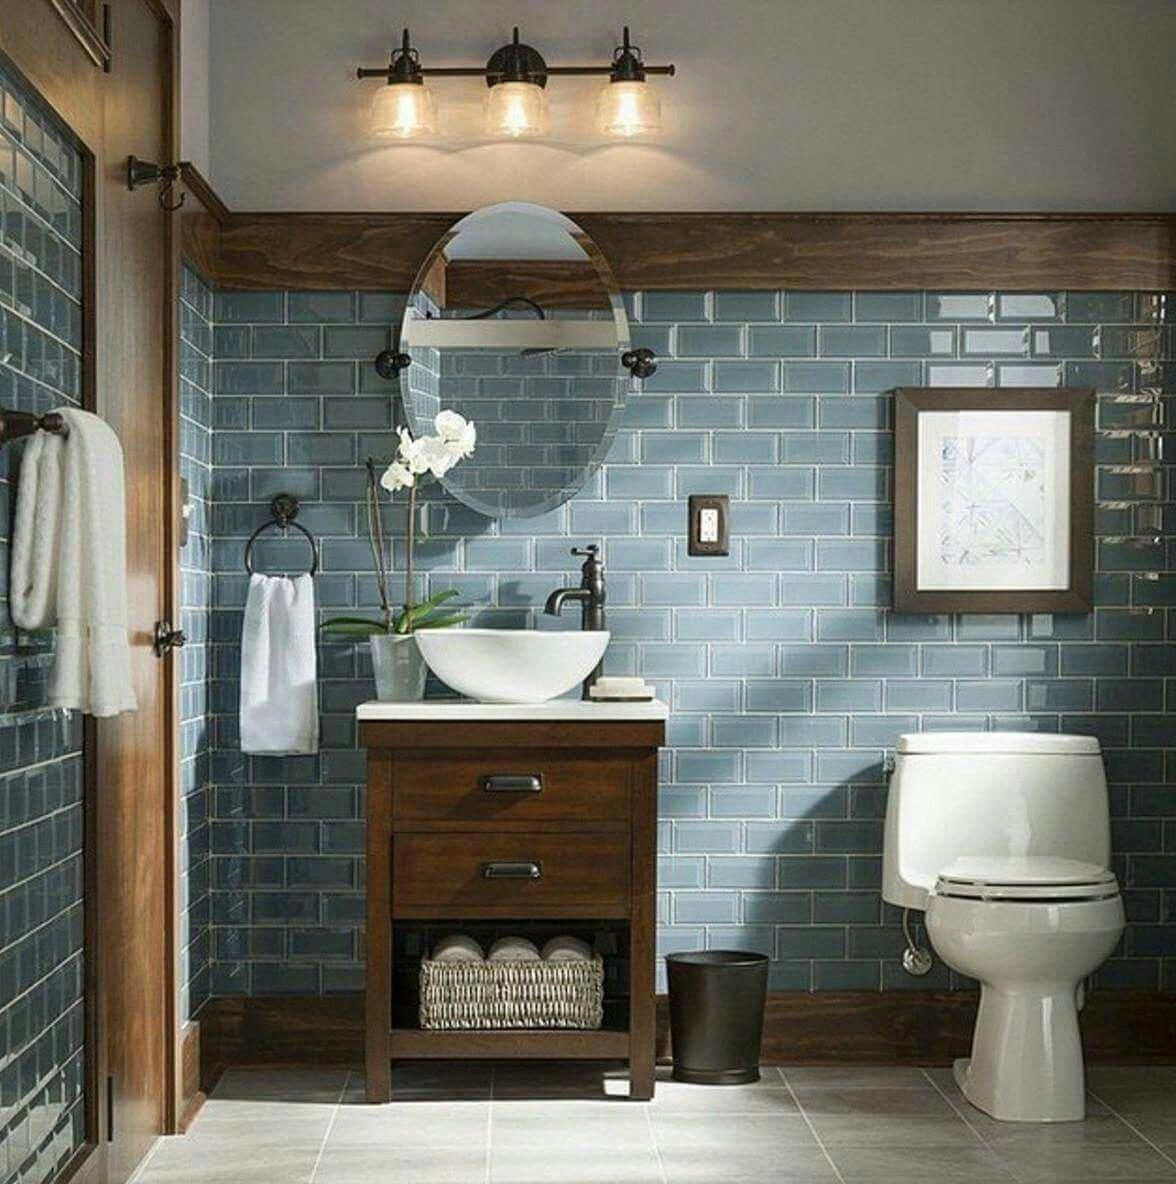 bathroom bathroom in 2019 bathroom family bathroom rh pinterest com